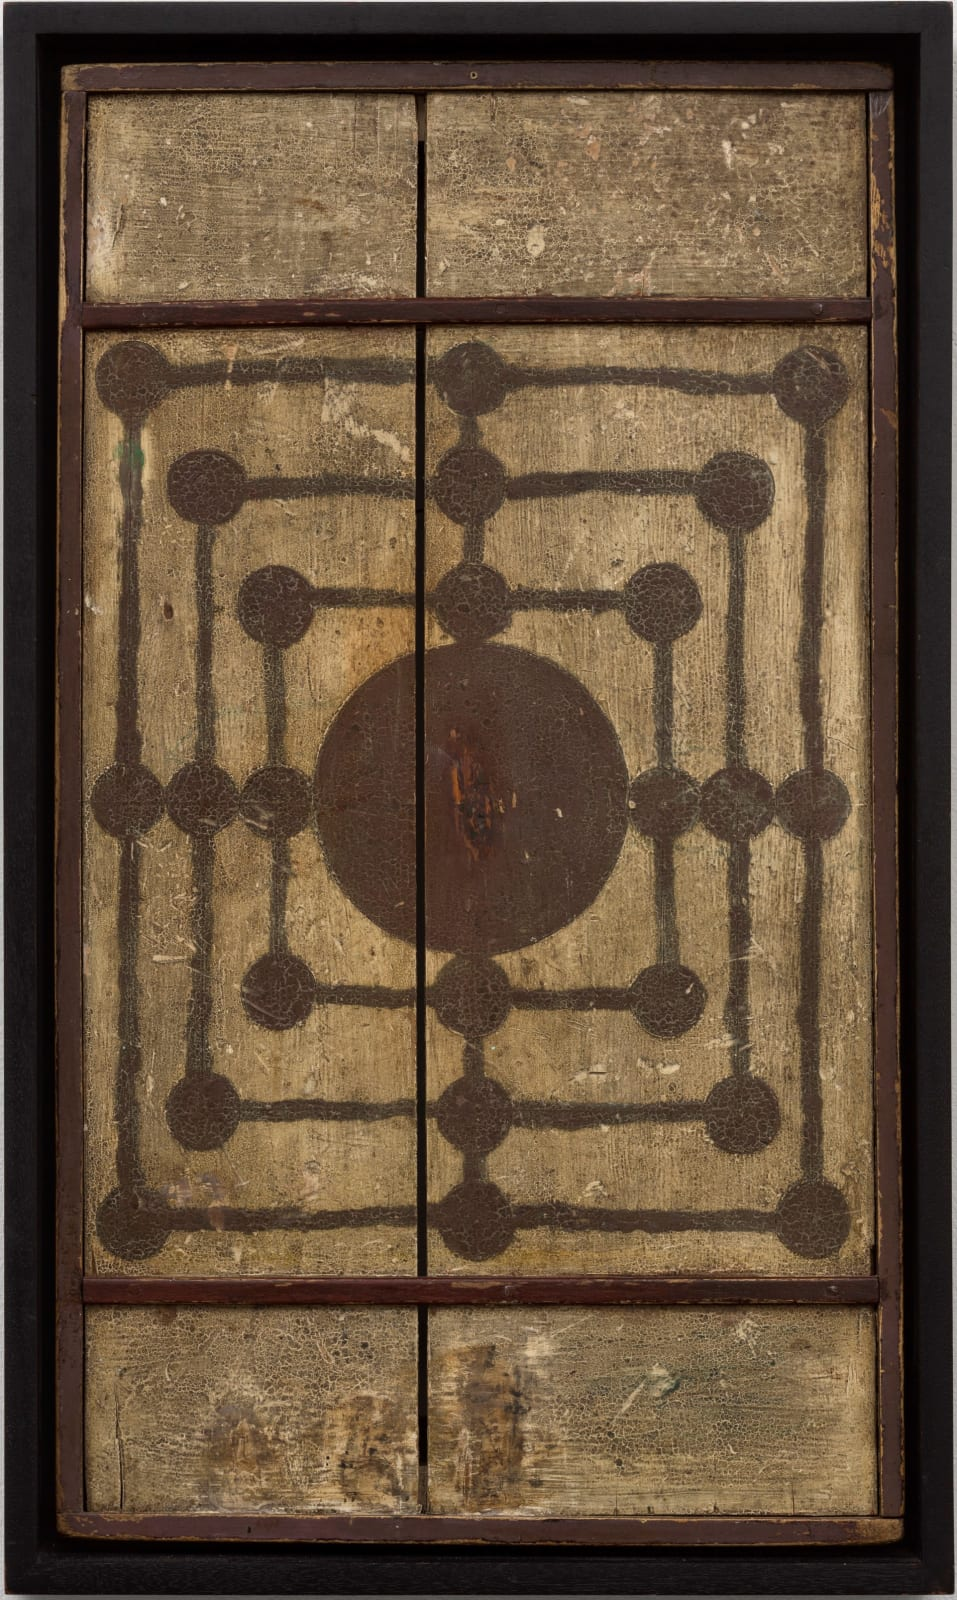 MILLS GAME BOARD, LATE 19TH CENTURY Paint on wood panel 25 x 14 in. (AU 303)